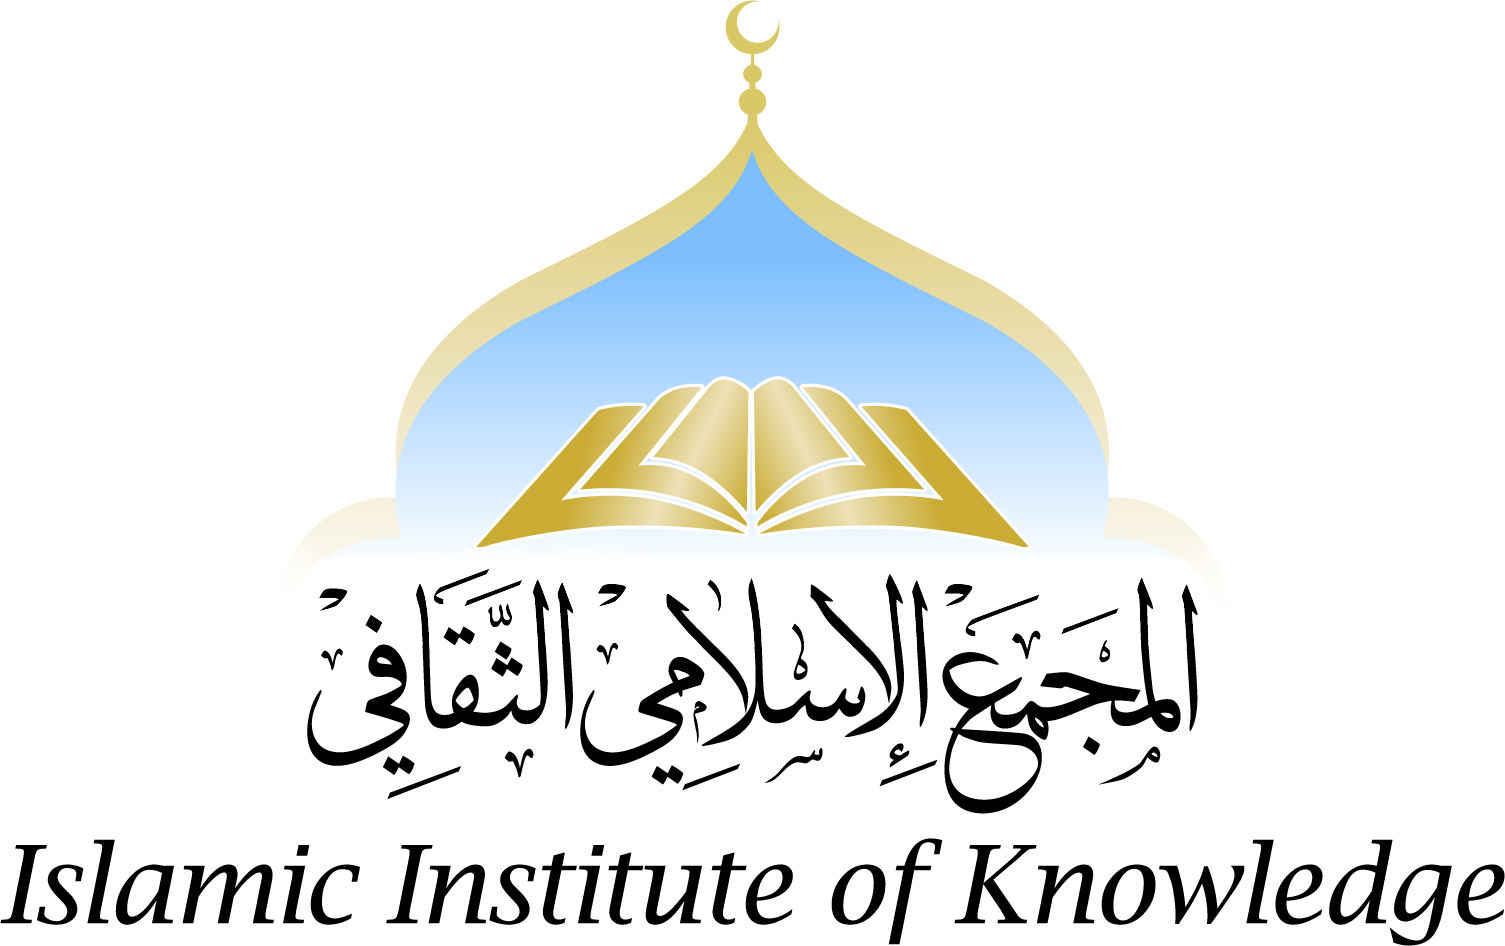 donate now zakat al fitra ramadan 2020 by islamic institute of knowledge zakat al fitra ramadan 2020 by islamic